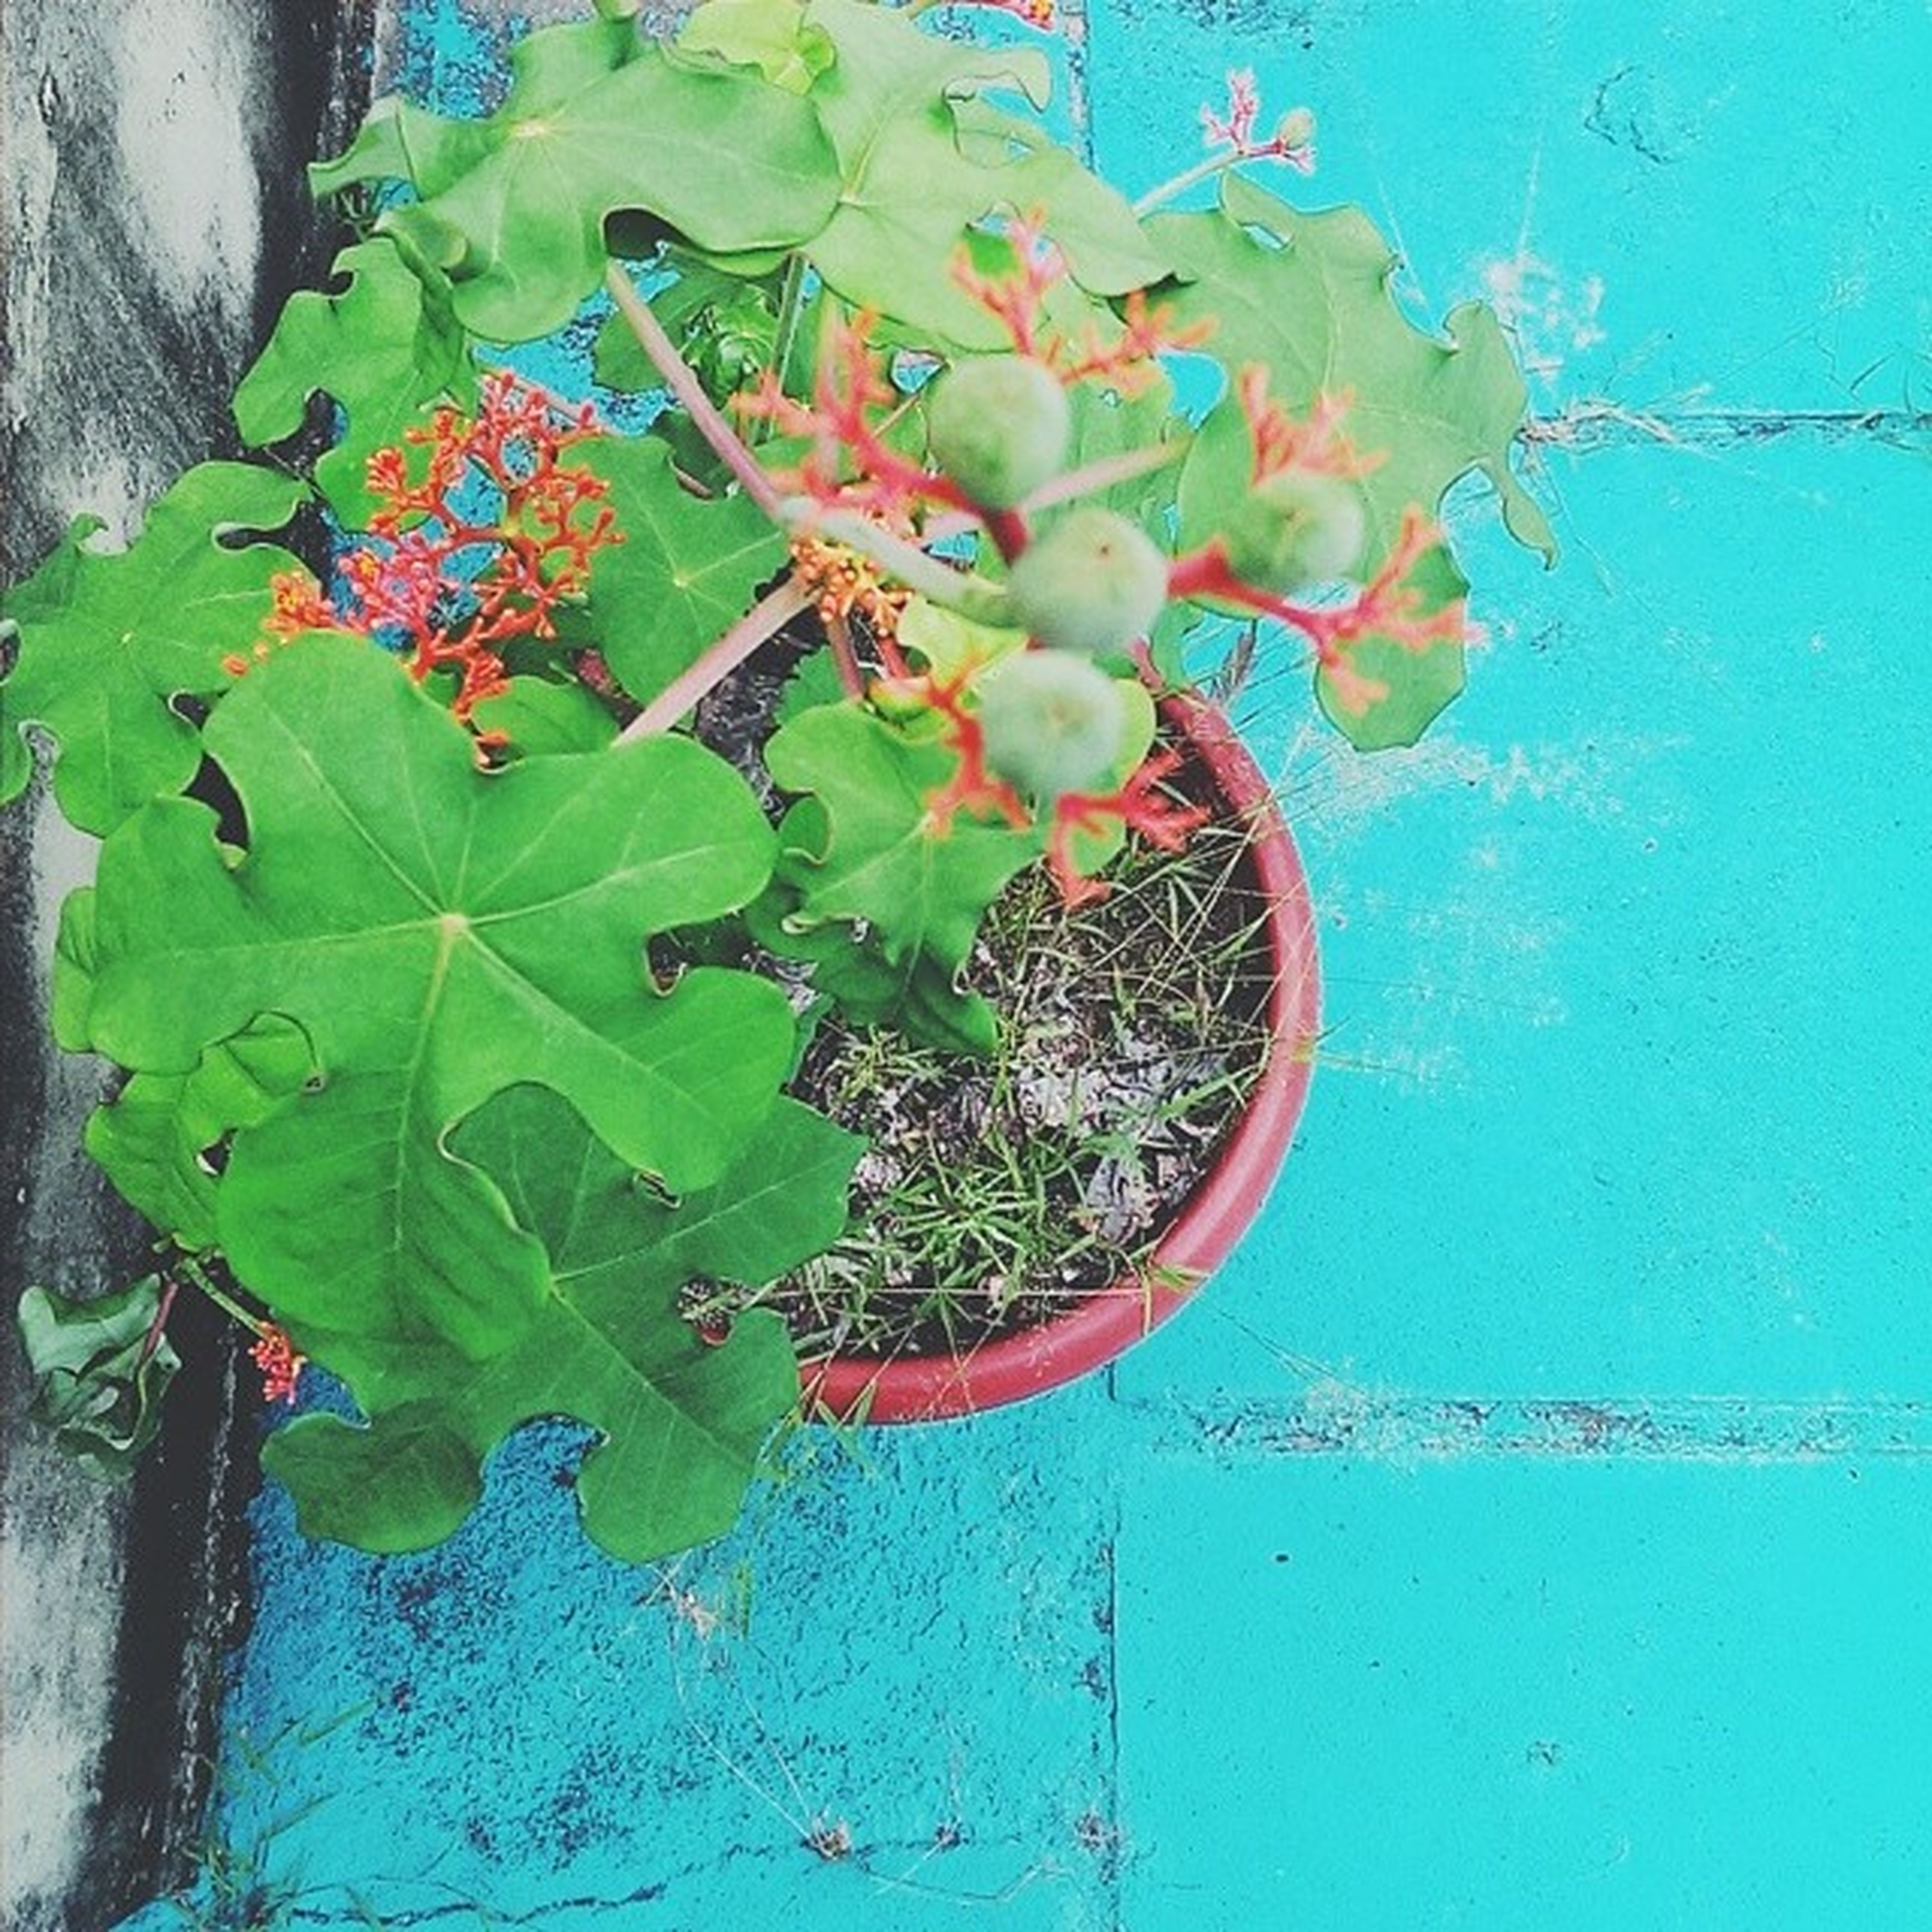 growth, flower, plant, wall - building feature, potted plant, leaf, blue, wall, fragility, close-up, green color, nature, day, built structure, growing, no people, freshness, flower pot, outdoors, architecture